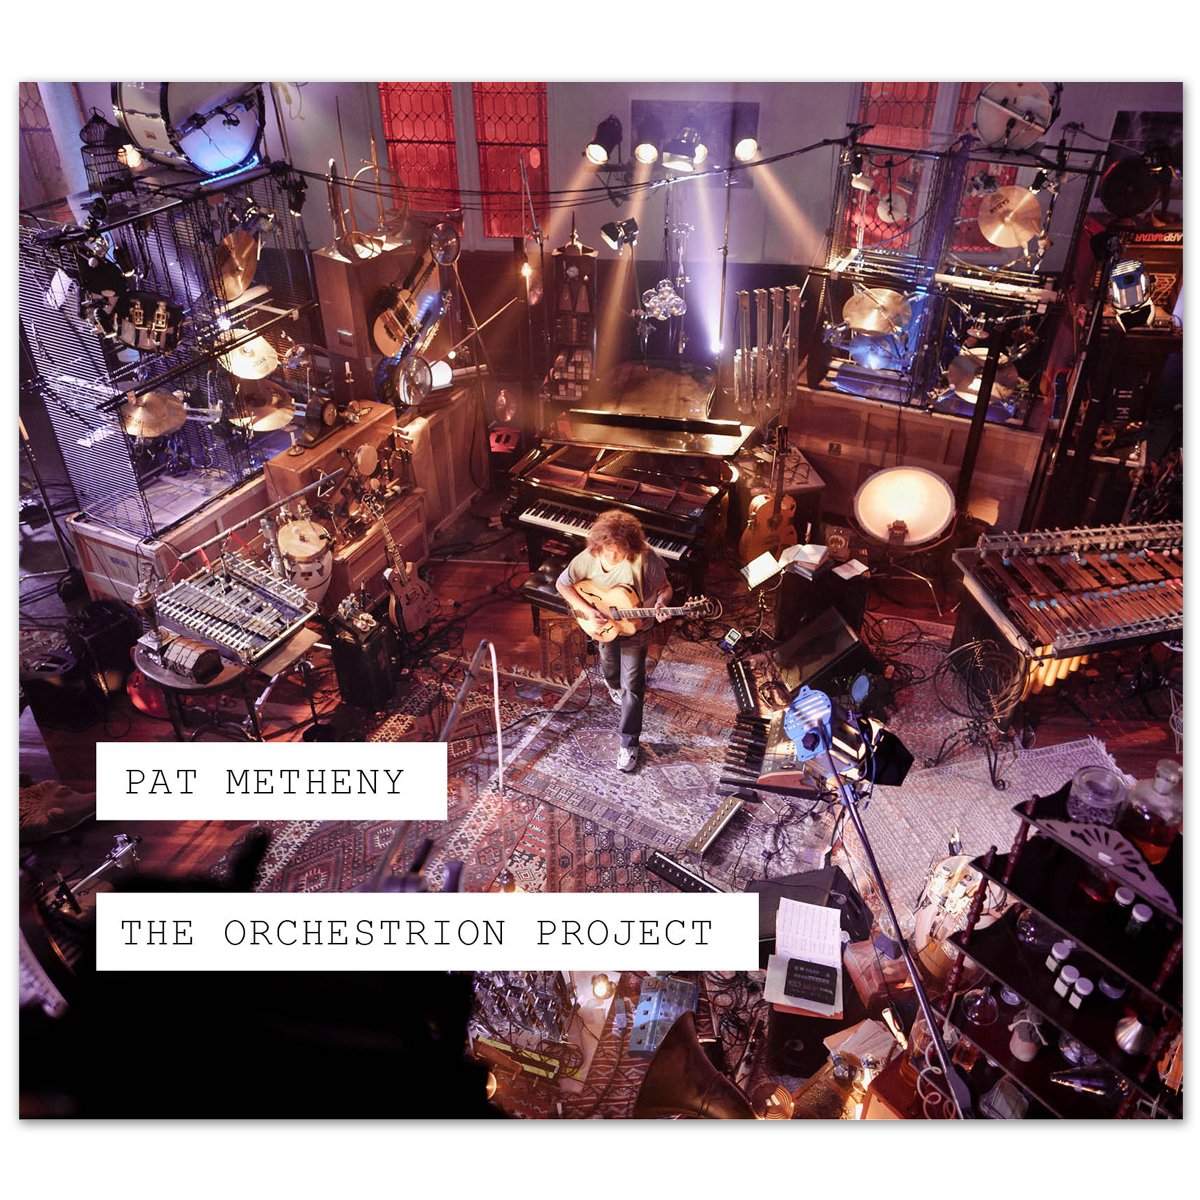 Pat Metheny: The Orchestrion Project 2CD